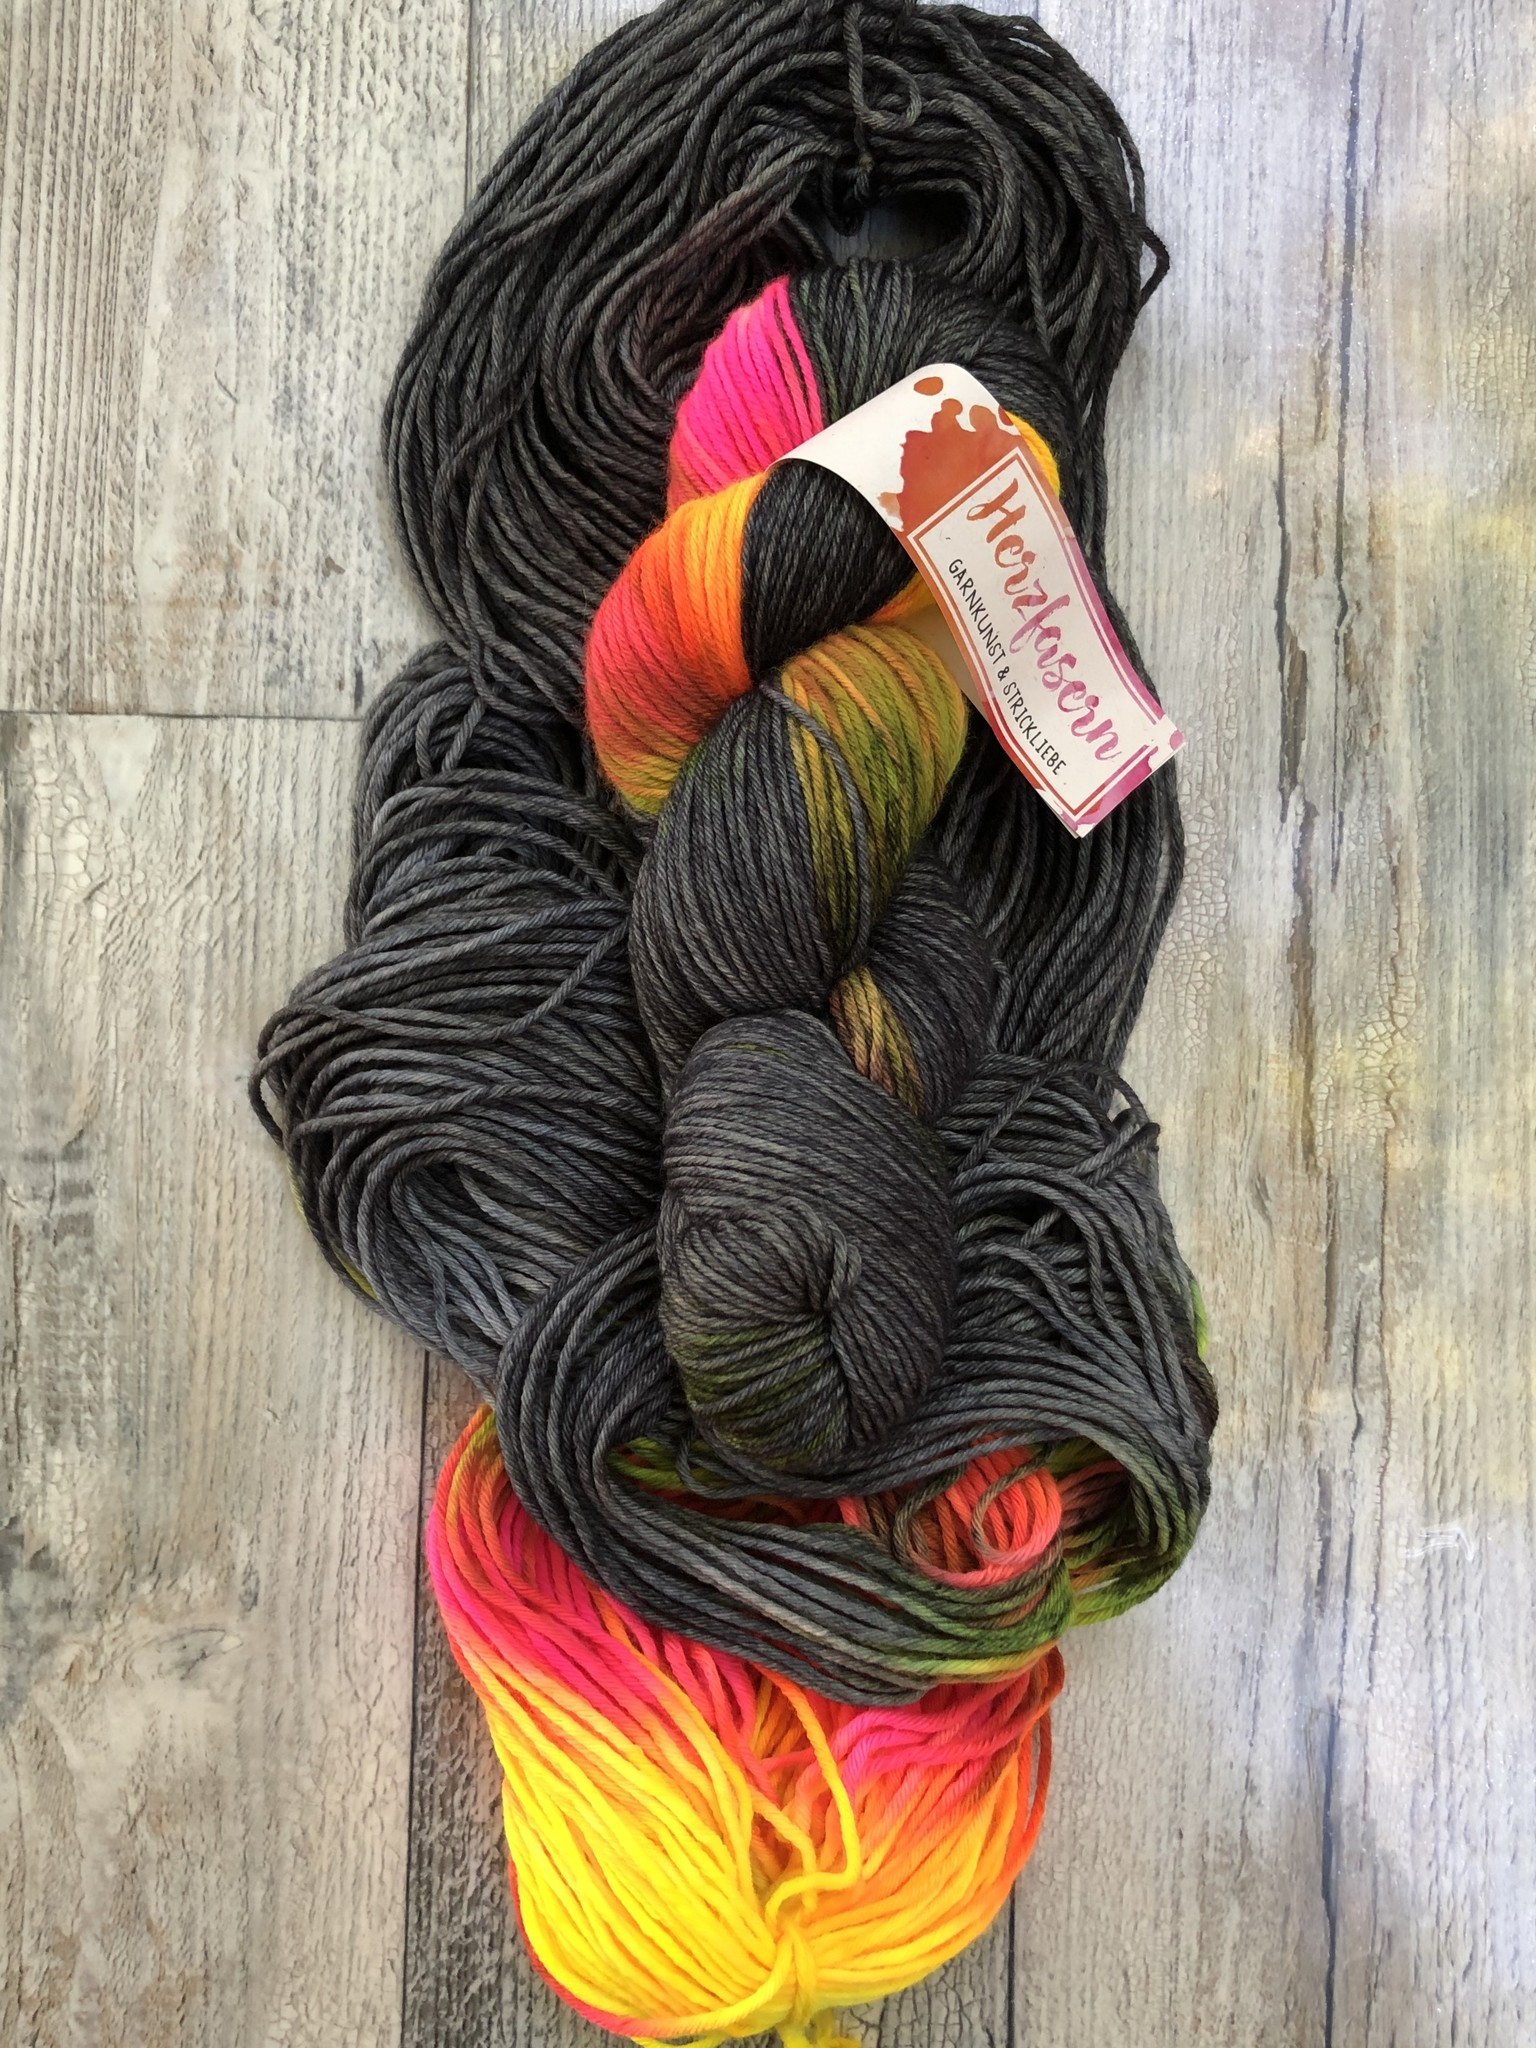 Herzfasern Merino 260 - Mr. Gray and Neon